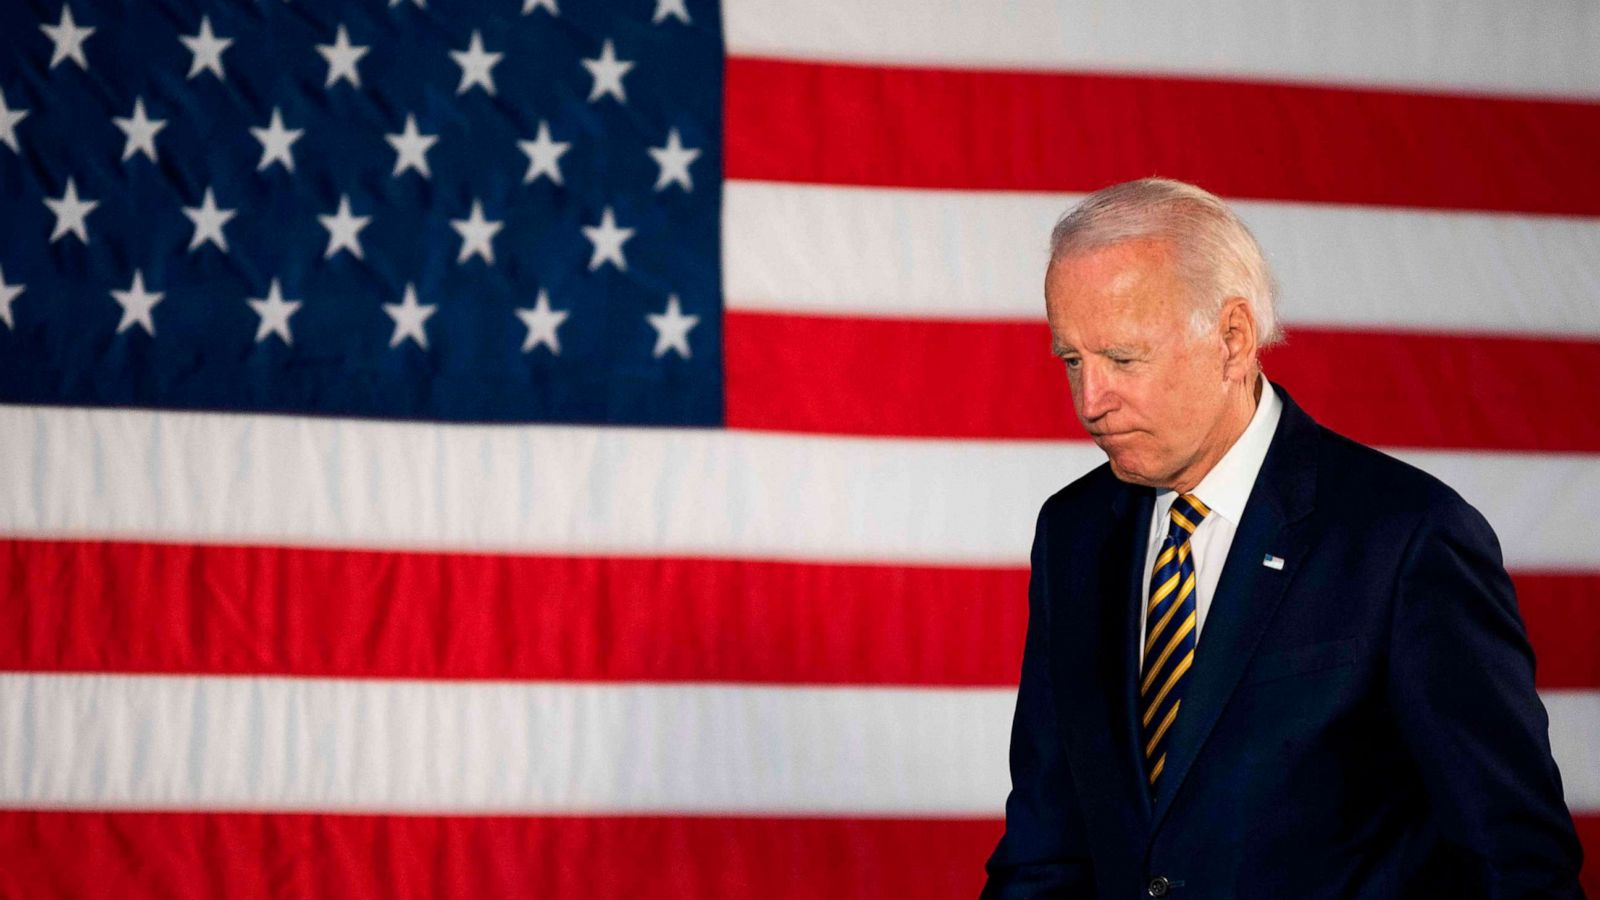 Joe Biden's Lying is a Real Problem